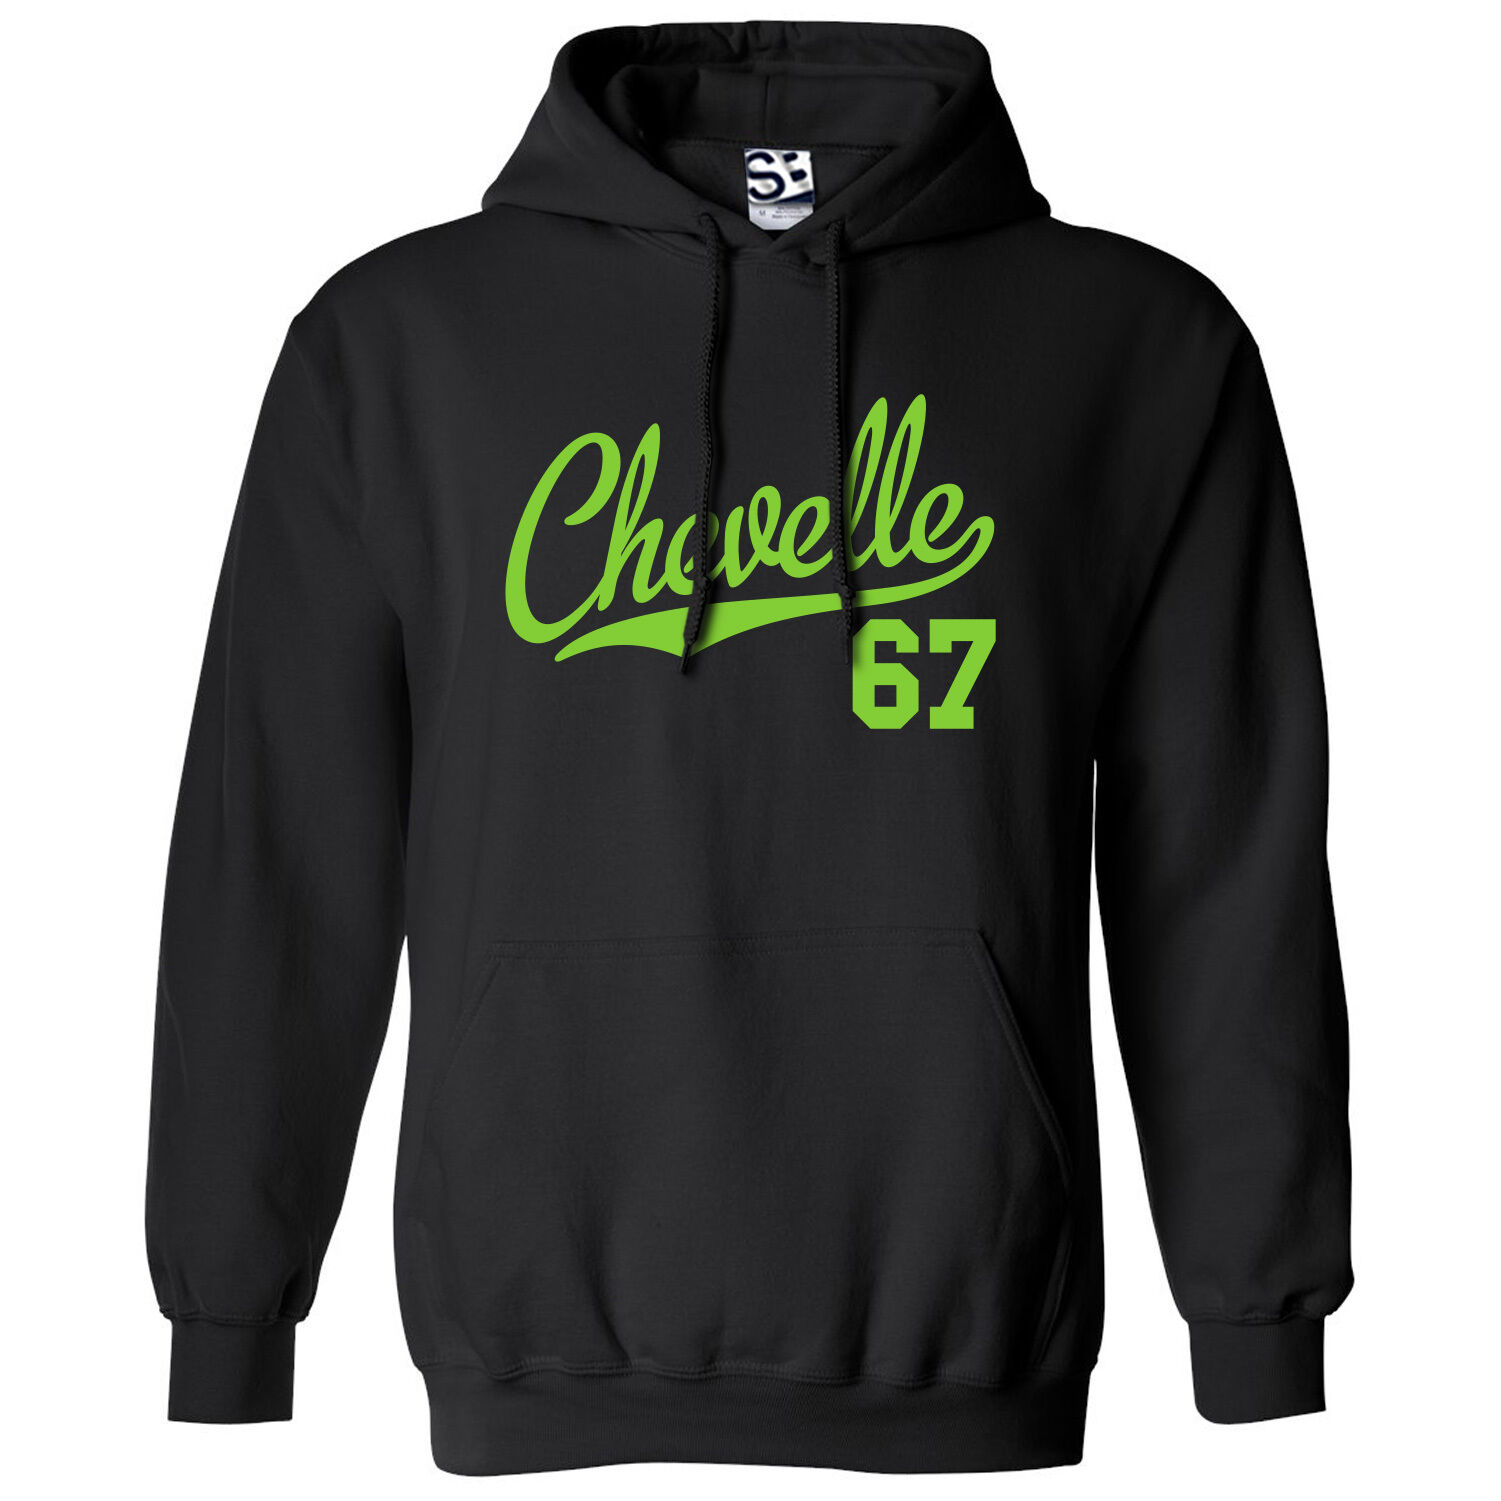 Chevelle 67 Script & Tail HOODIE - Hooded 1967 Muscle Car Sweatshirt All Farbes